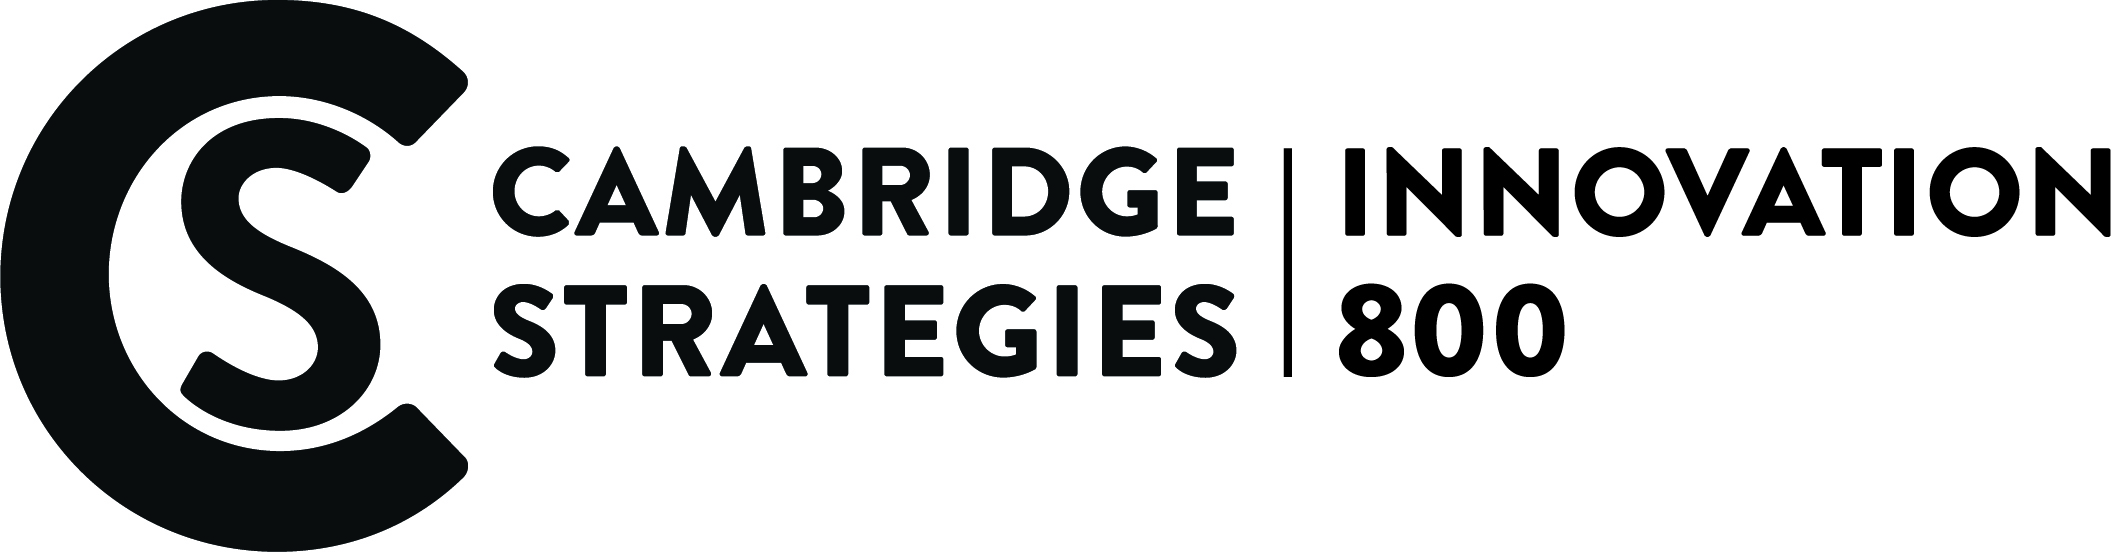 Cambridge Strategies Innovation 800